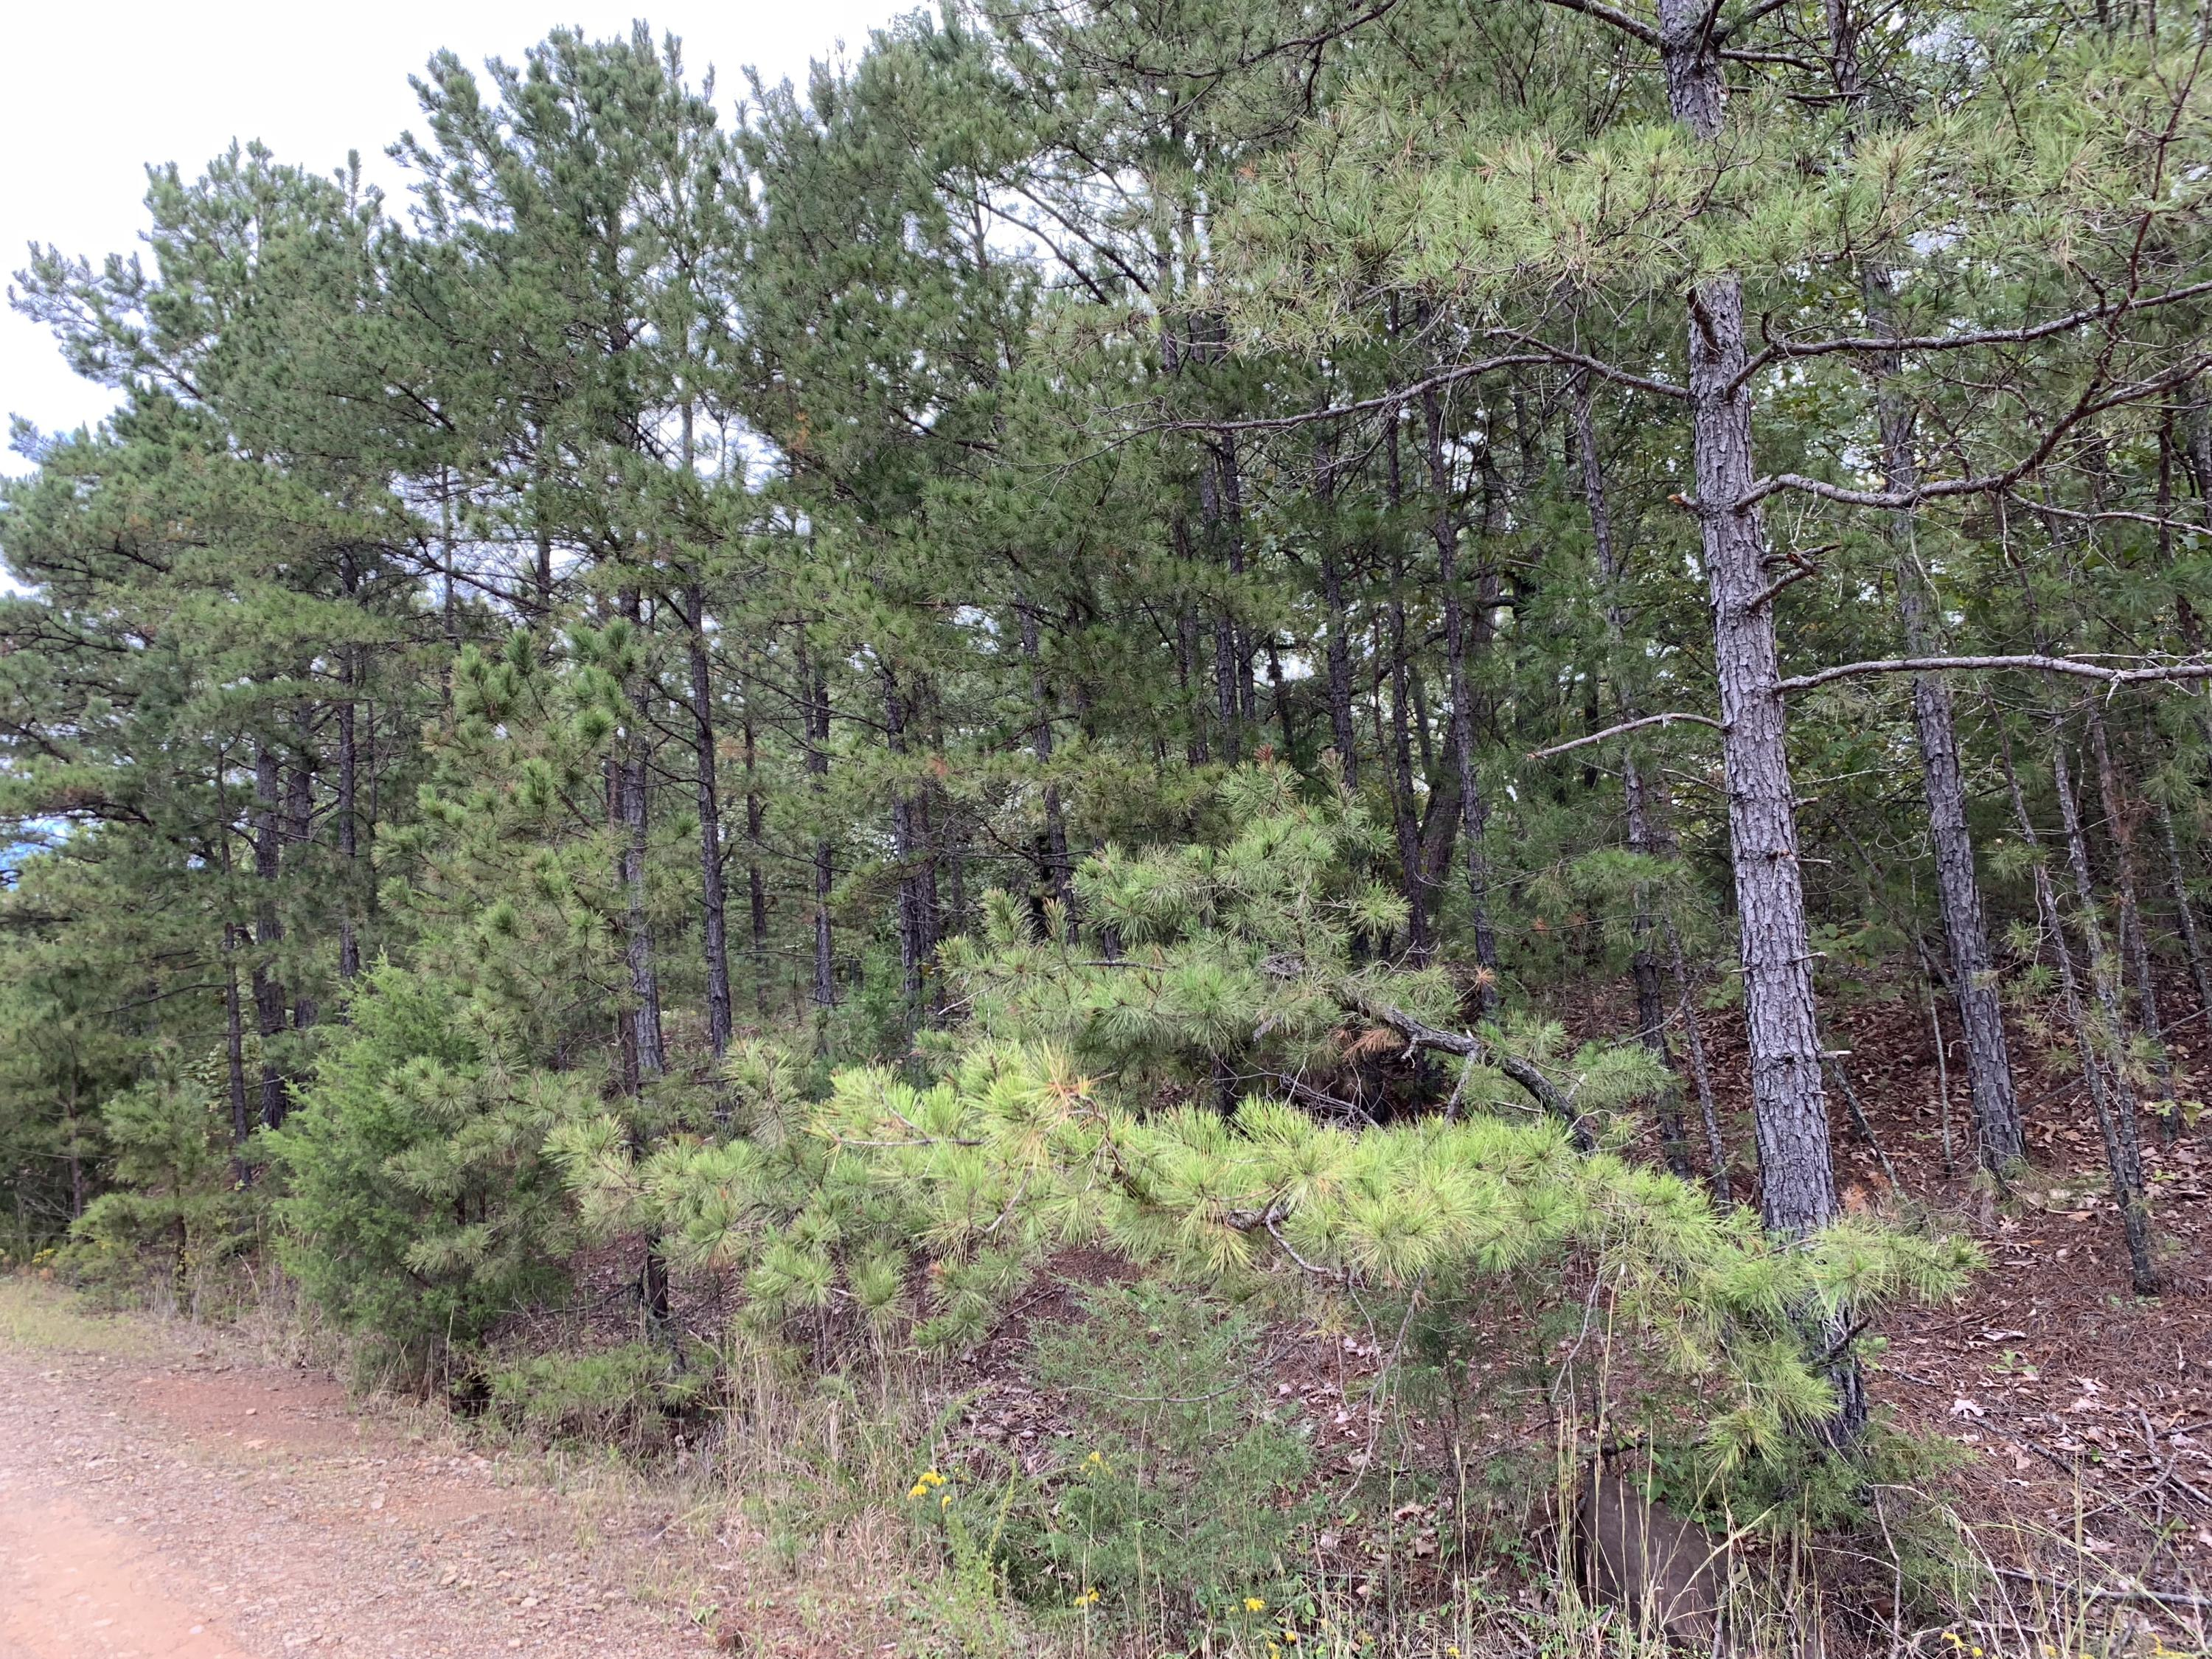 Large photo 2 of land for sale at  Bennett Orchard Estates , London, AR, listed by Coldwell Banker Premier Realty